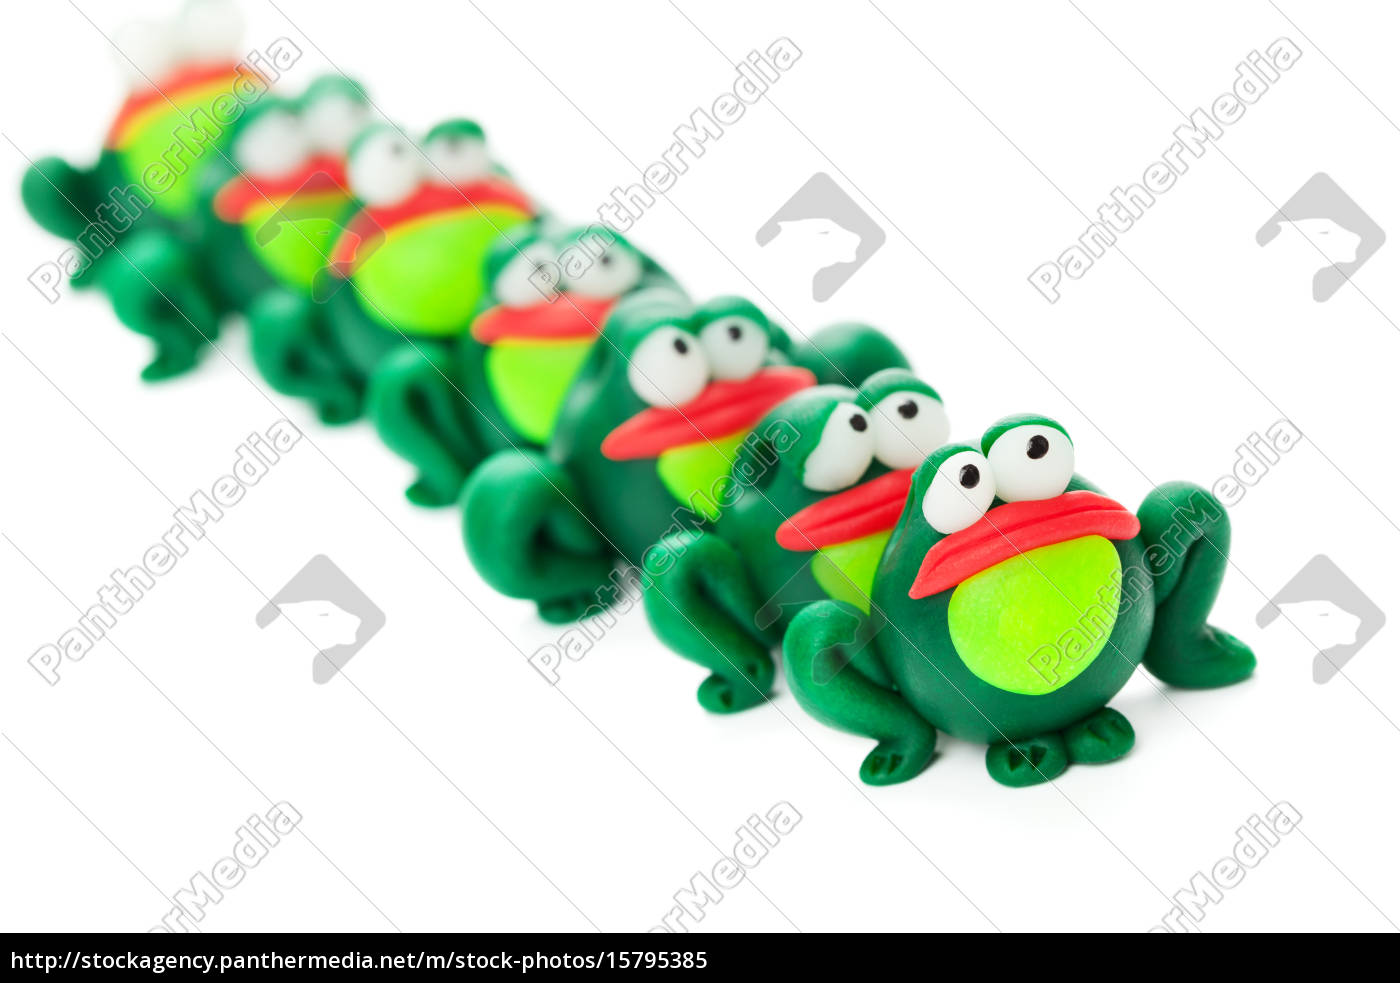 frogs - 15795385